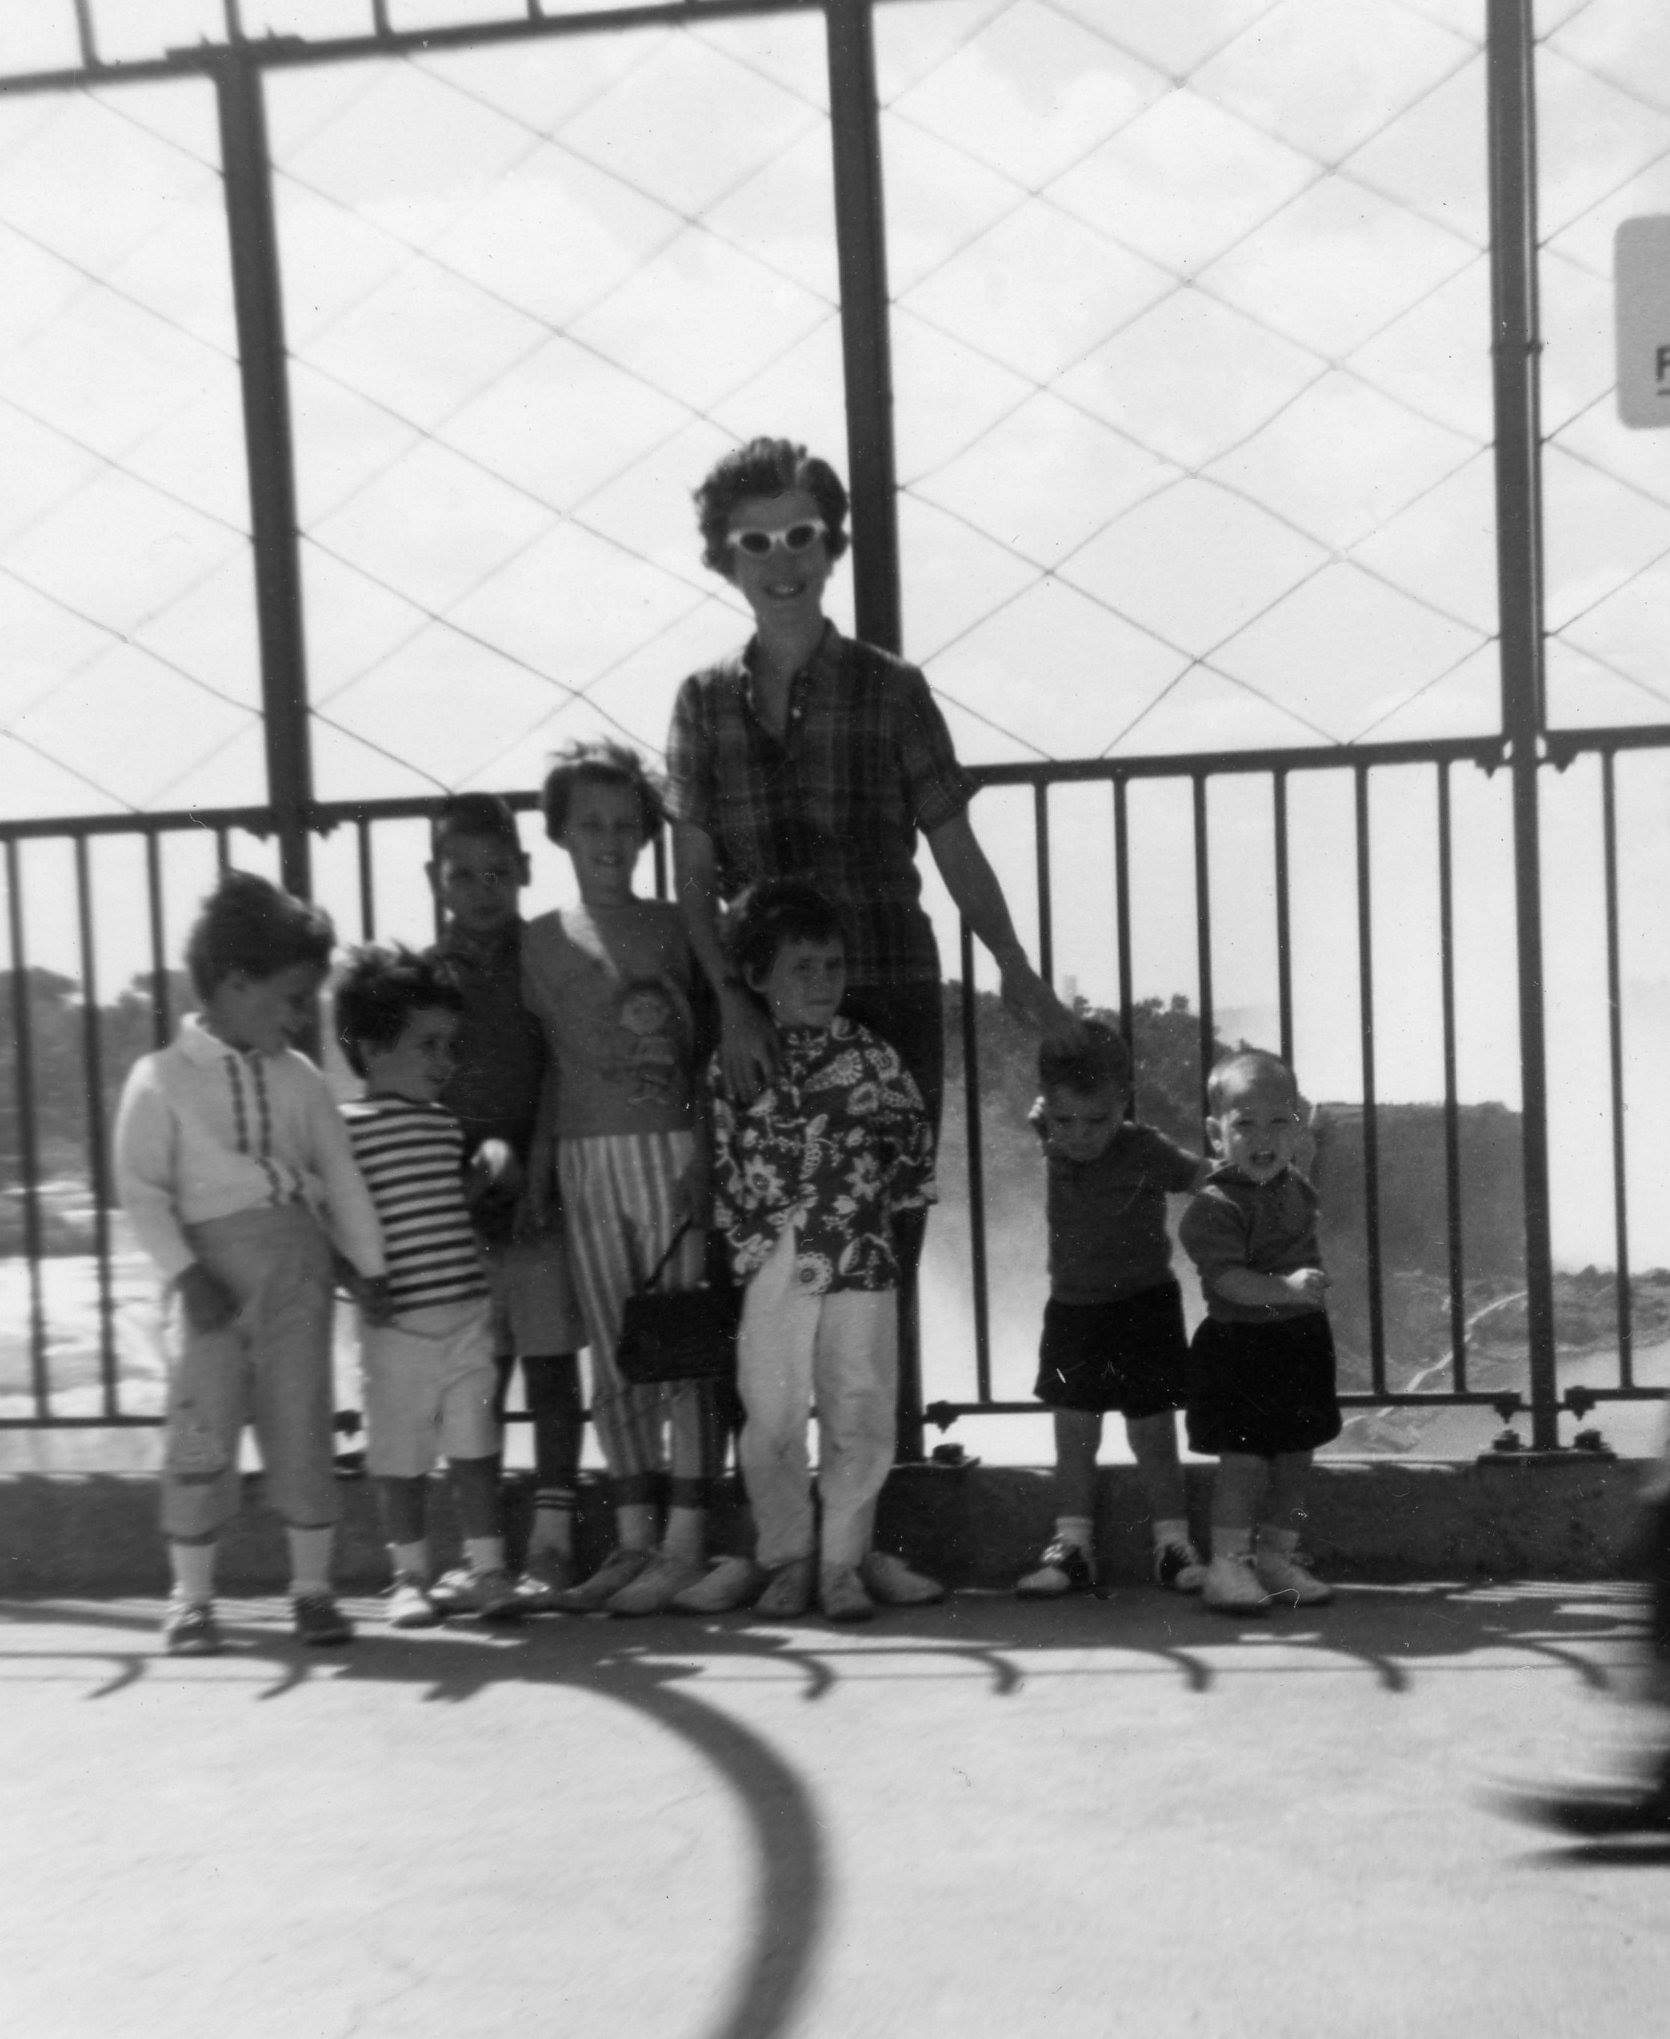 Luis Galup and his family. (Photo provided by Luis Galup)